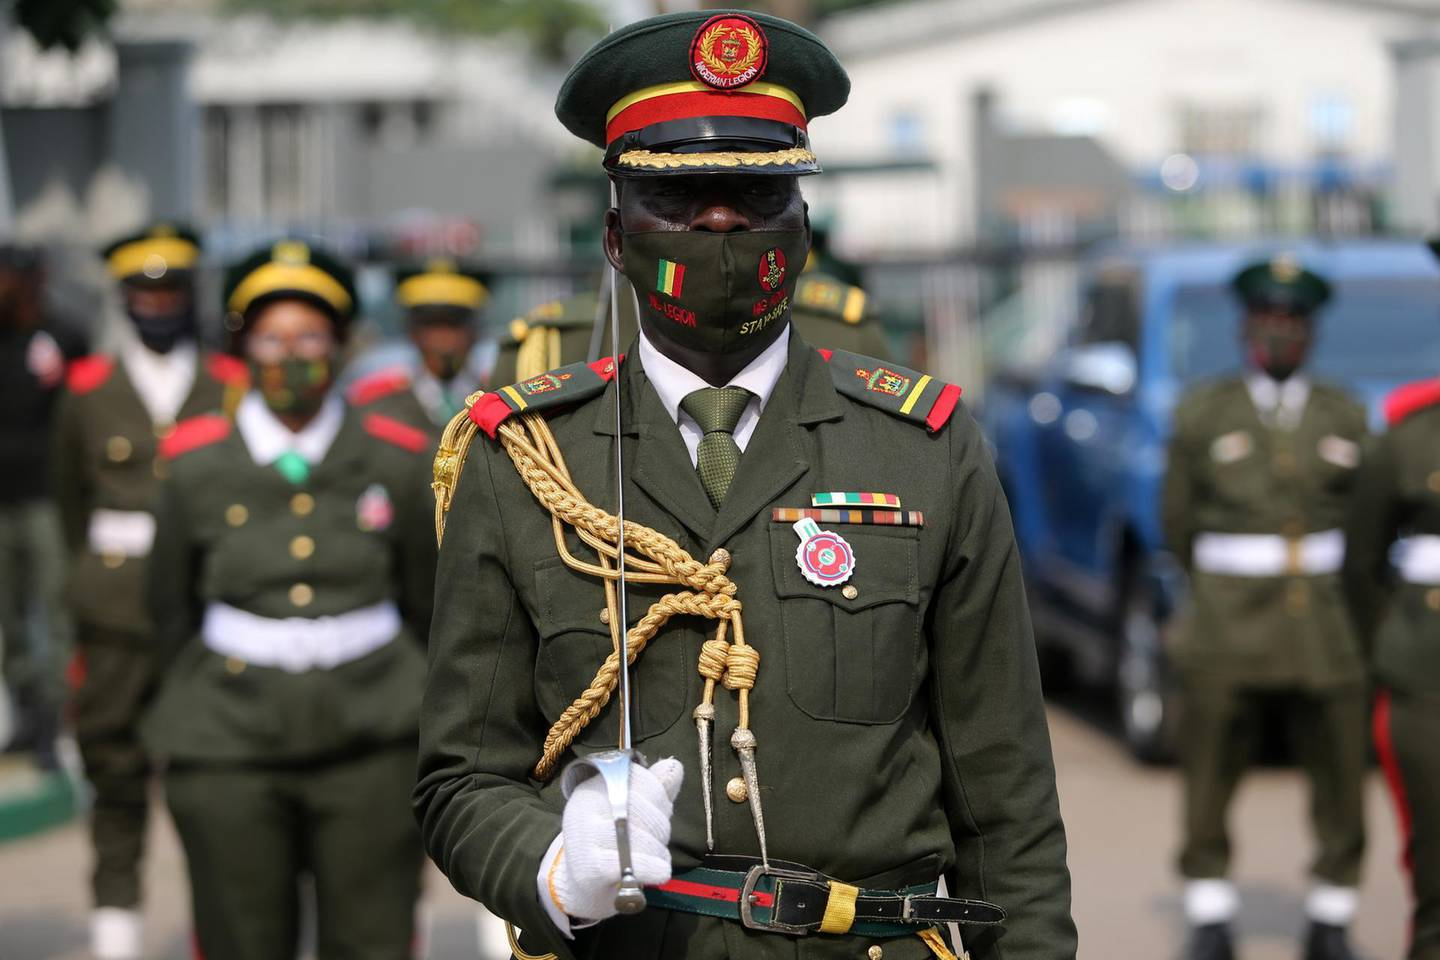 epa08939157 A military legion member wears a face mask as he stands in line during a military parade for the fallen heroes at the Tafawa Balewa military arcade in Lagos, Nigeria, 15 January 2021. The Nigerian military celebrates fallen heroes in the ceremony that includes laying of wreaths, a military parade, and gun salutes.  EPA/AKINTUNDE AKINLEYE